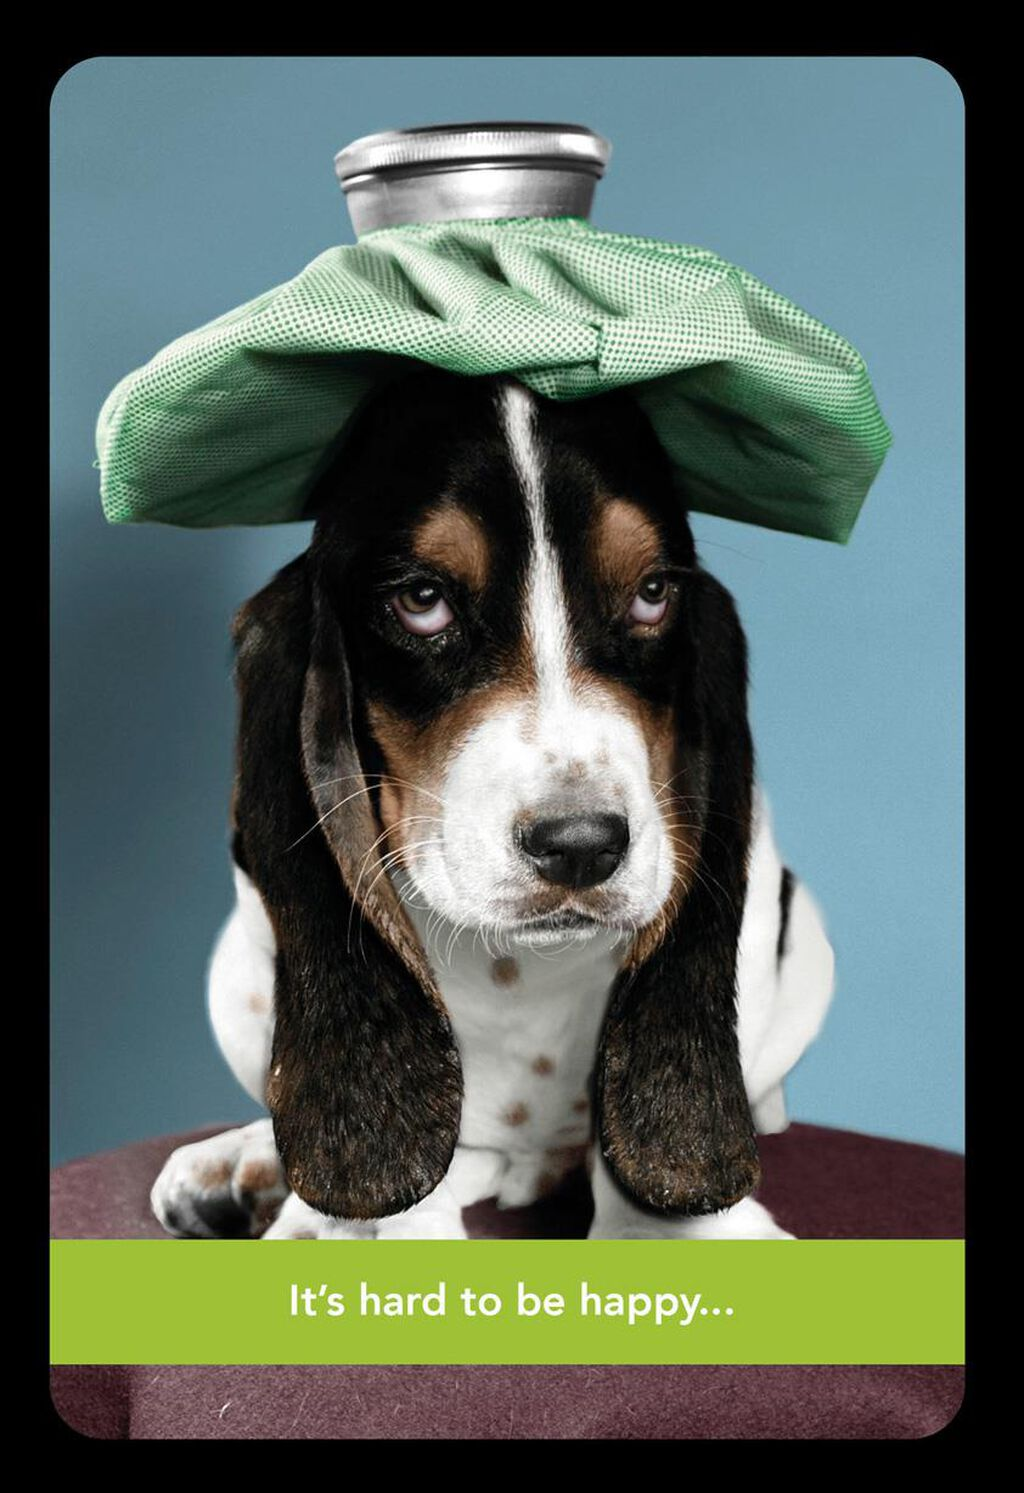 Basset Hound With Ice Pack Get Well Card - Greeting Cards - Hallmark